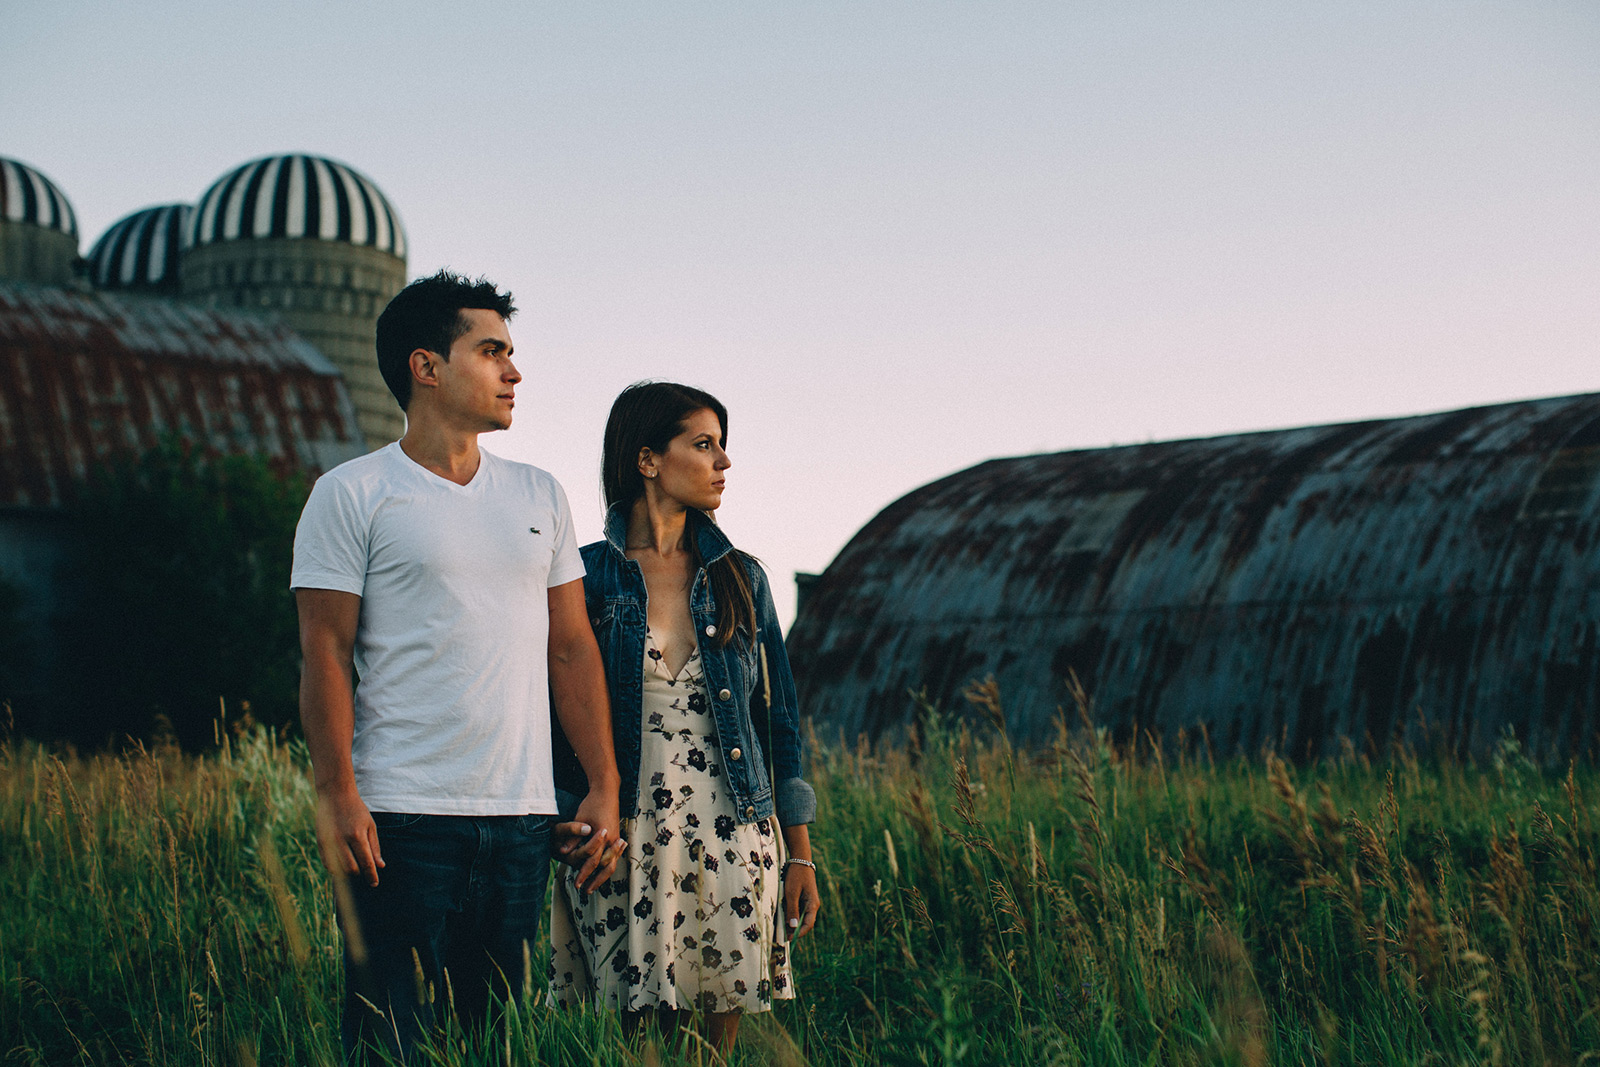 Rural-Ontario-modern-lifestyle-engagement-session-Sam-Wong-Visual-Cravings-AnJ_15